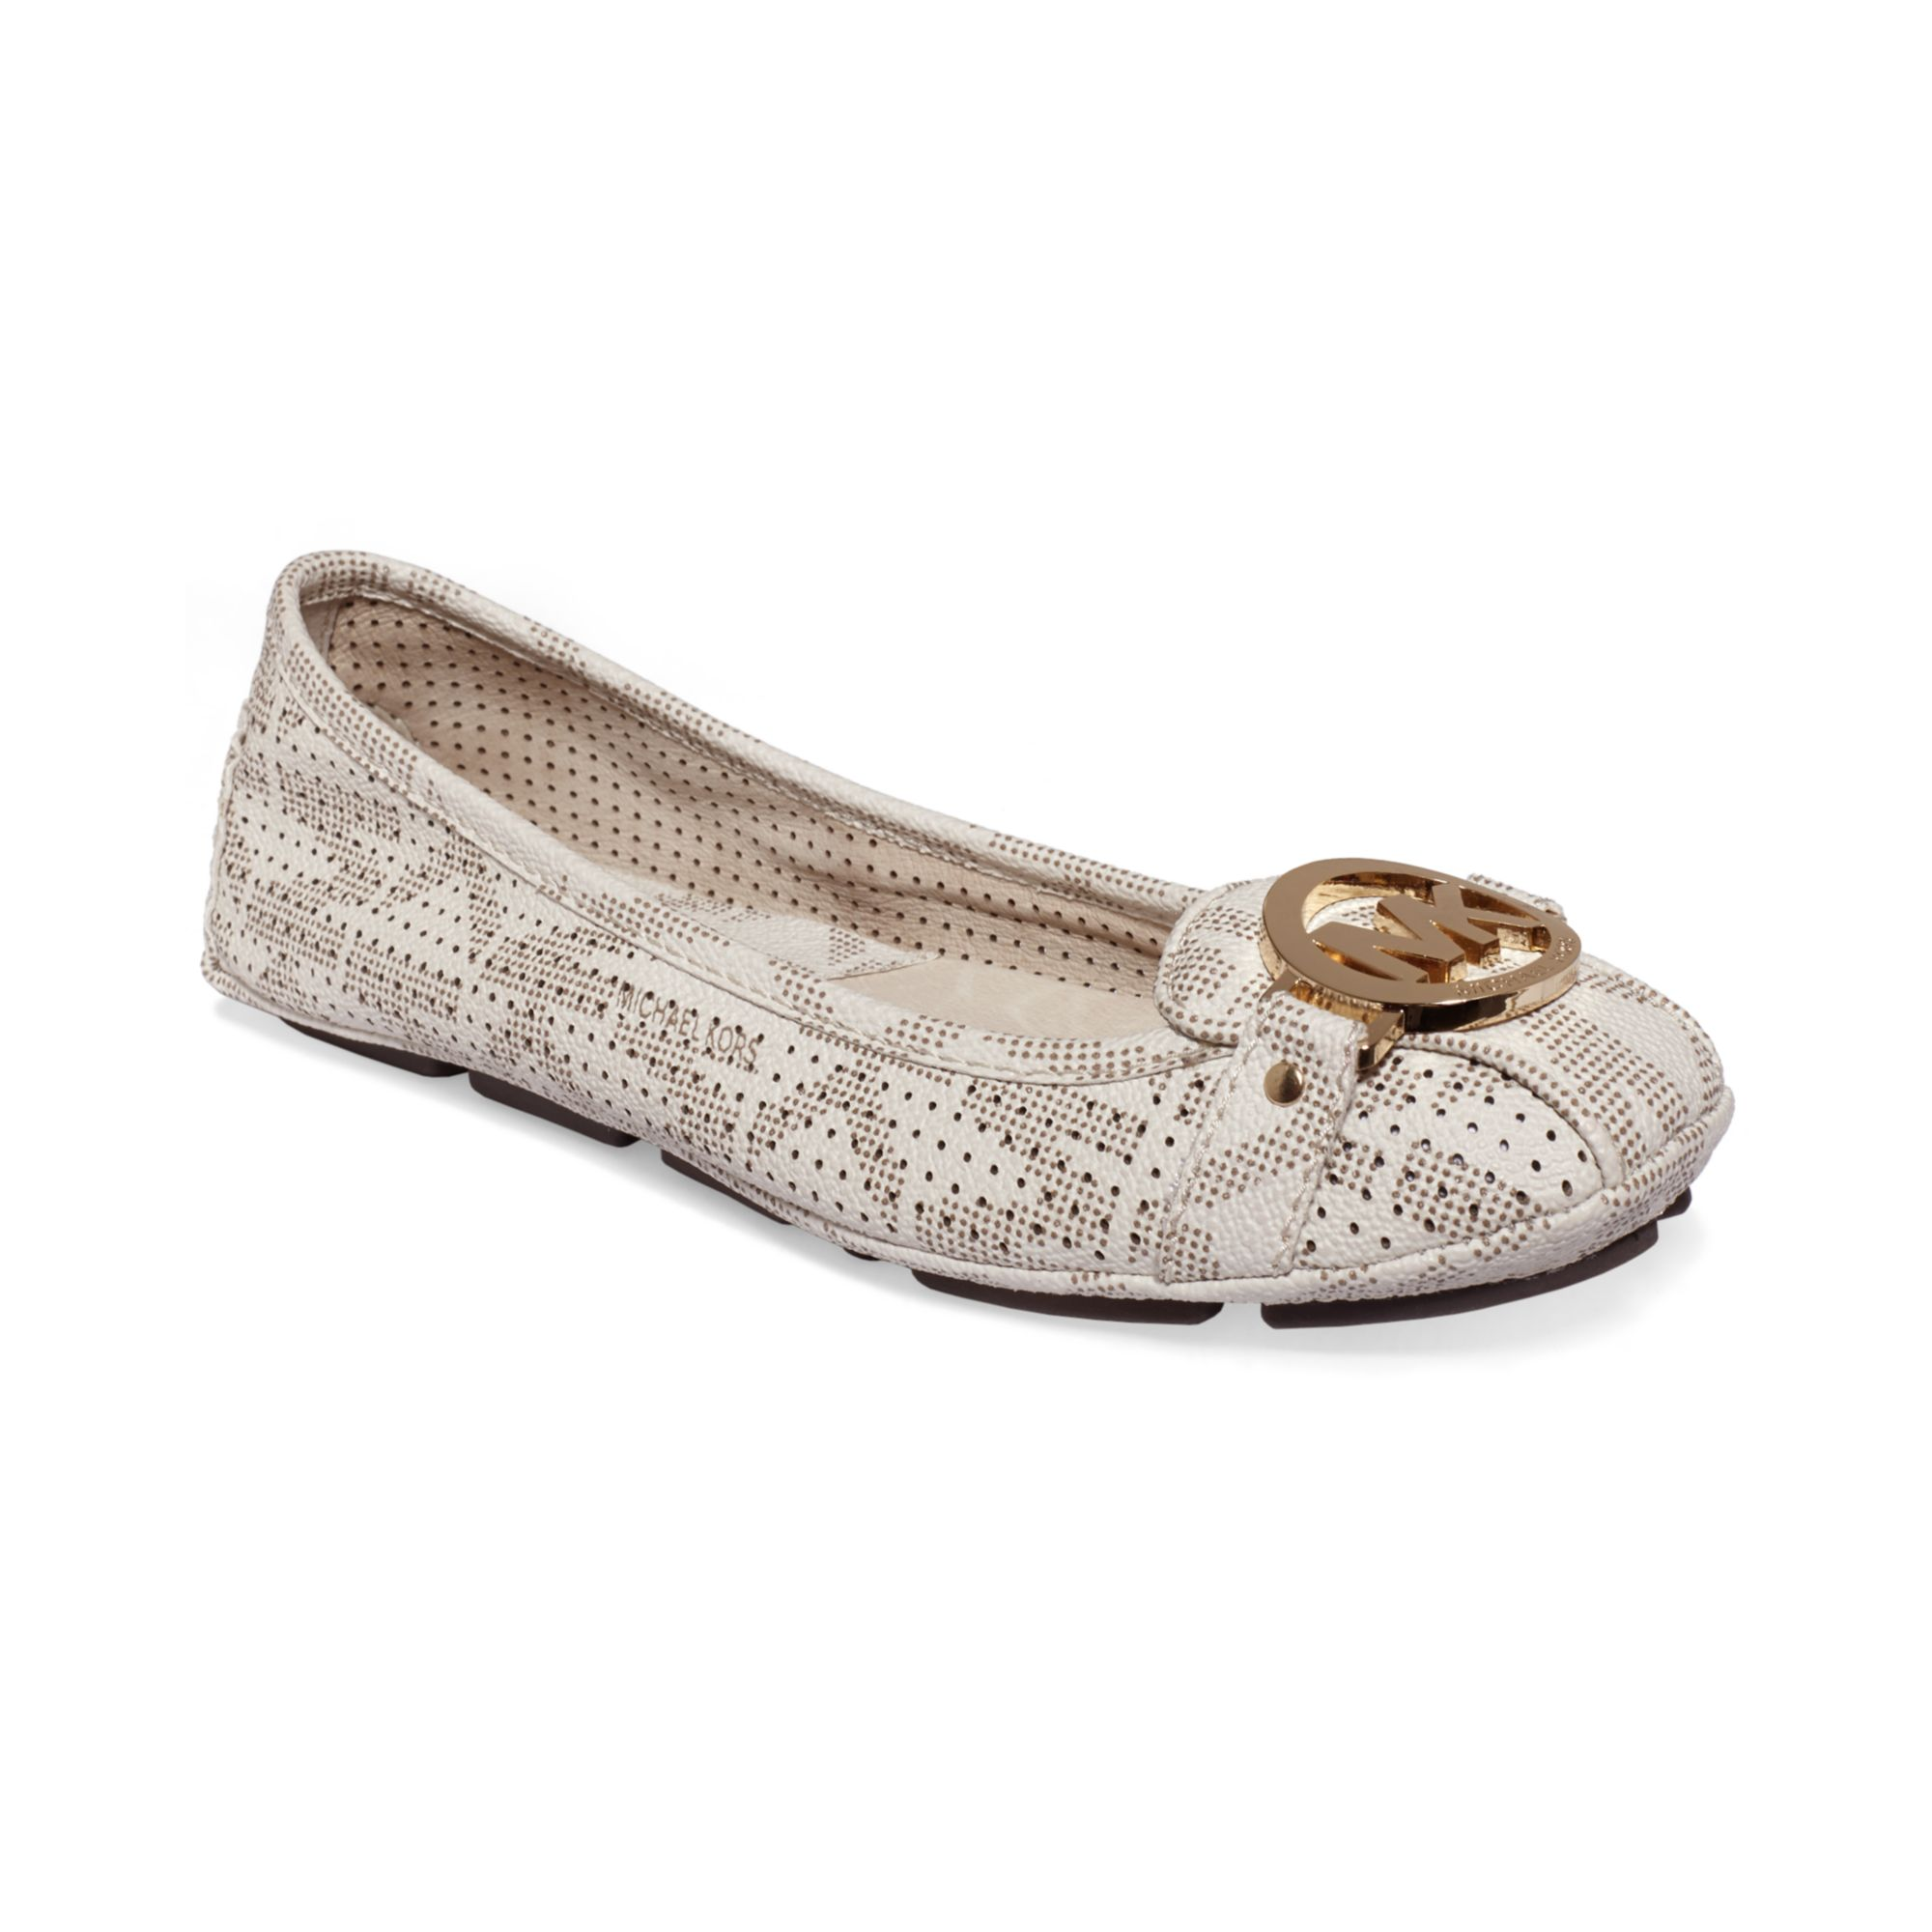 michael kors ballet flats in white vanilla lyst. Black Bedroom Furniture Sets. Home Design Ideas